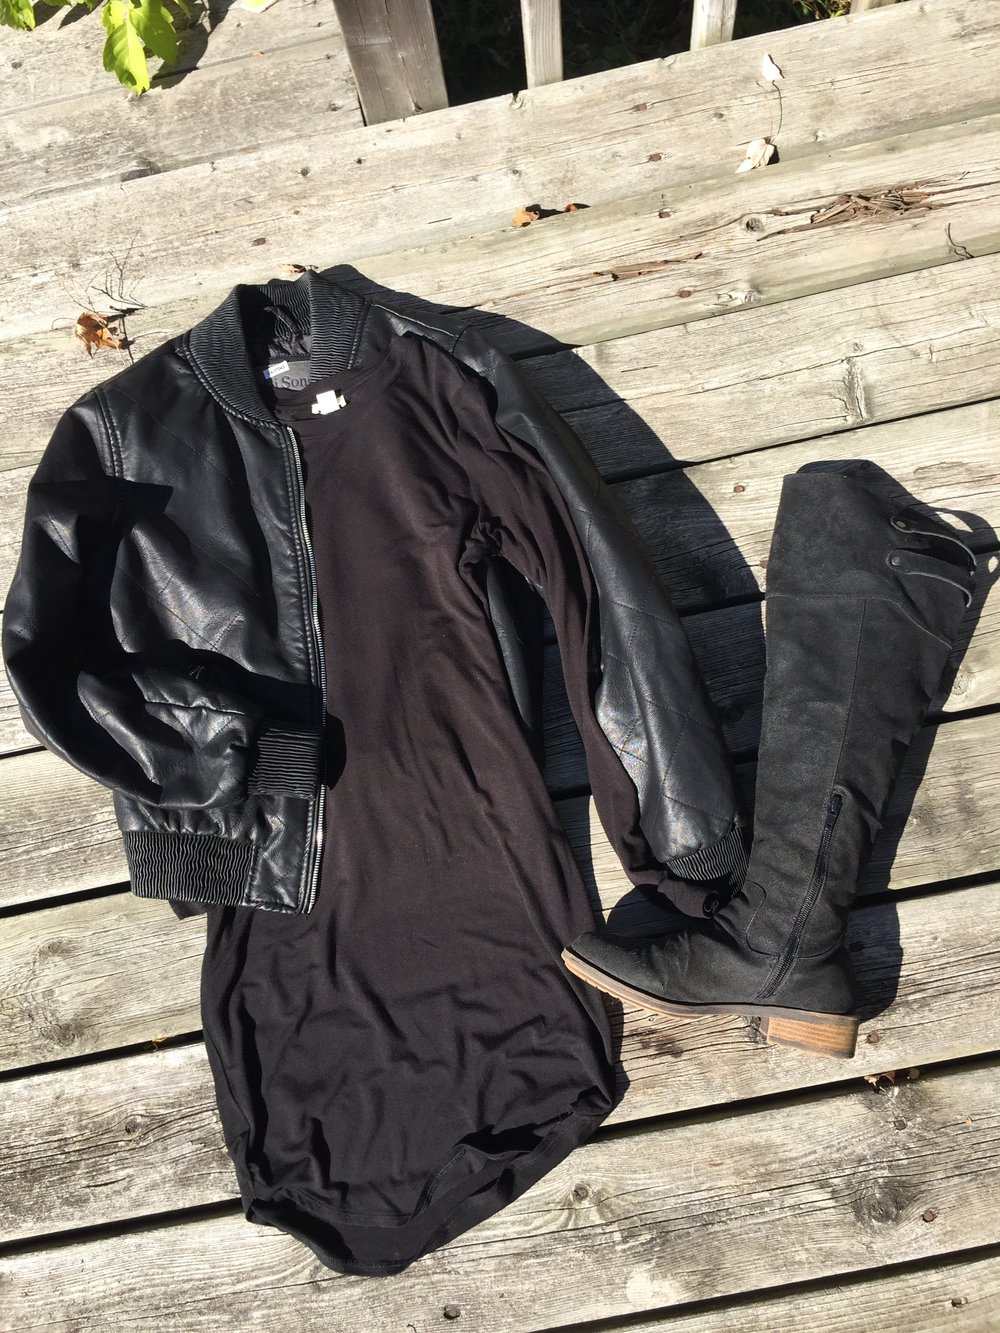 Black Long Sleeve Dress with Faux Leather Jacket and Black Knee High Boots